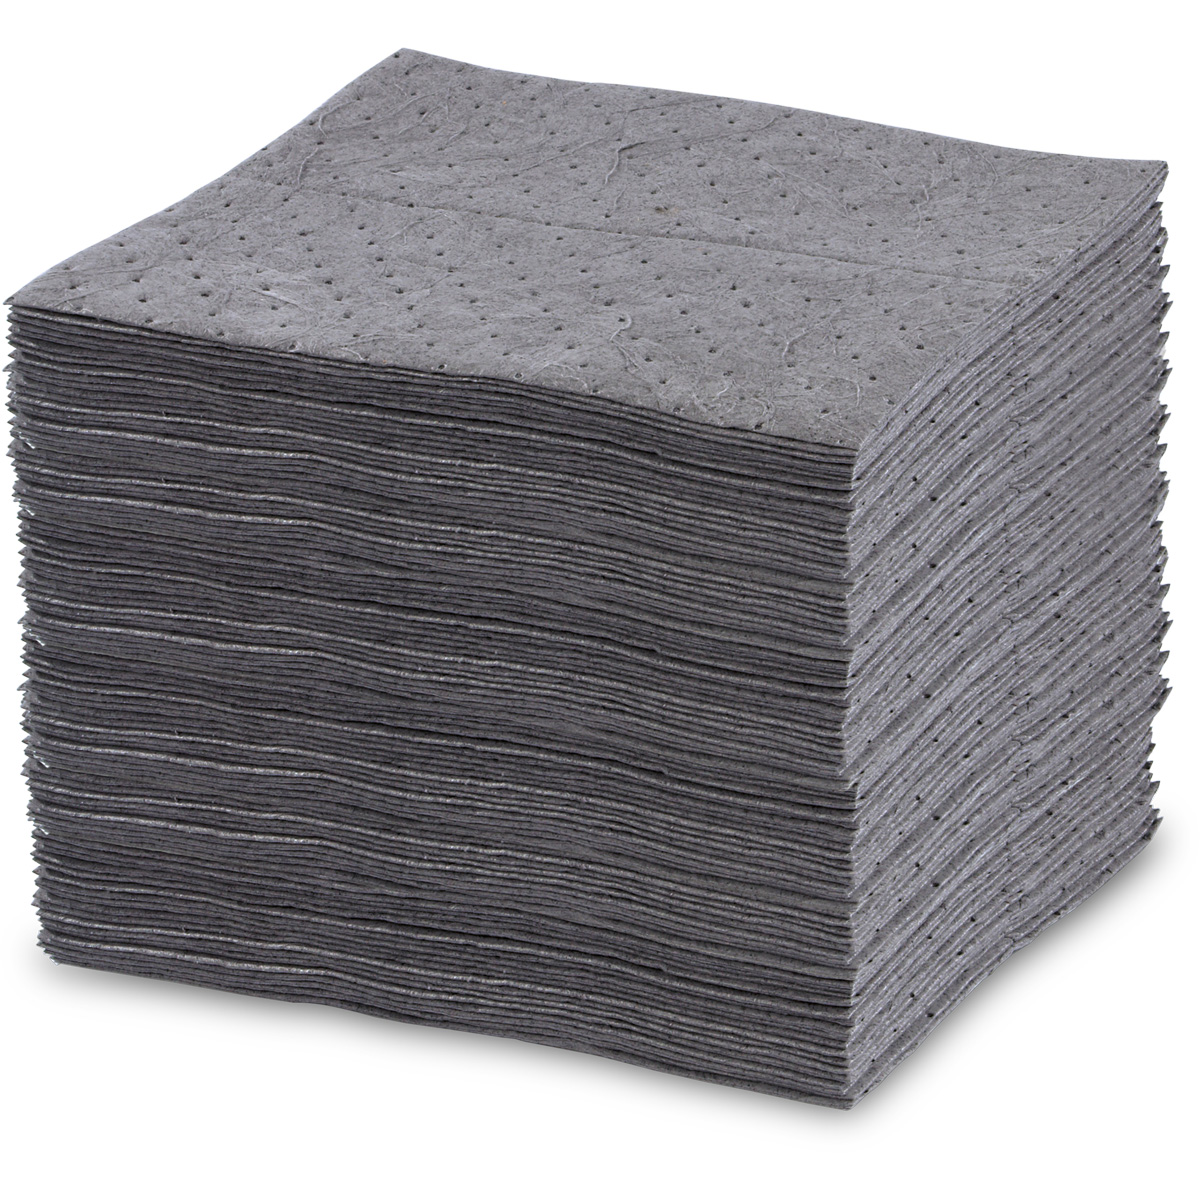 Universal Absorbent Pad Heavy Weight SC-05-107H